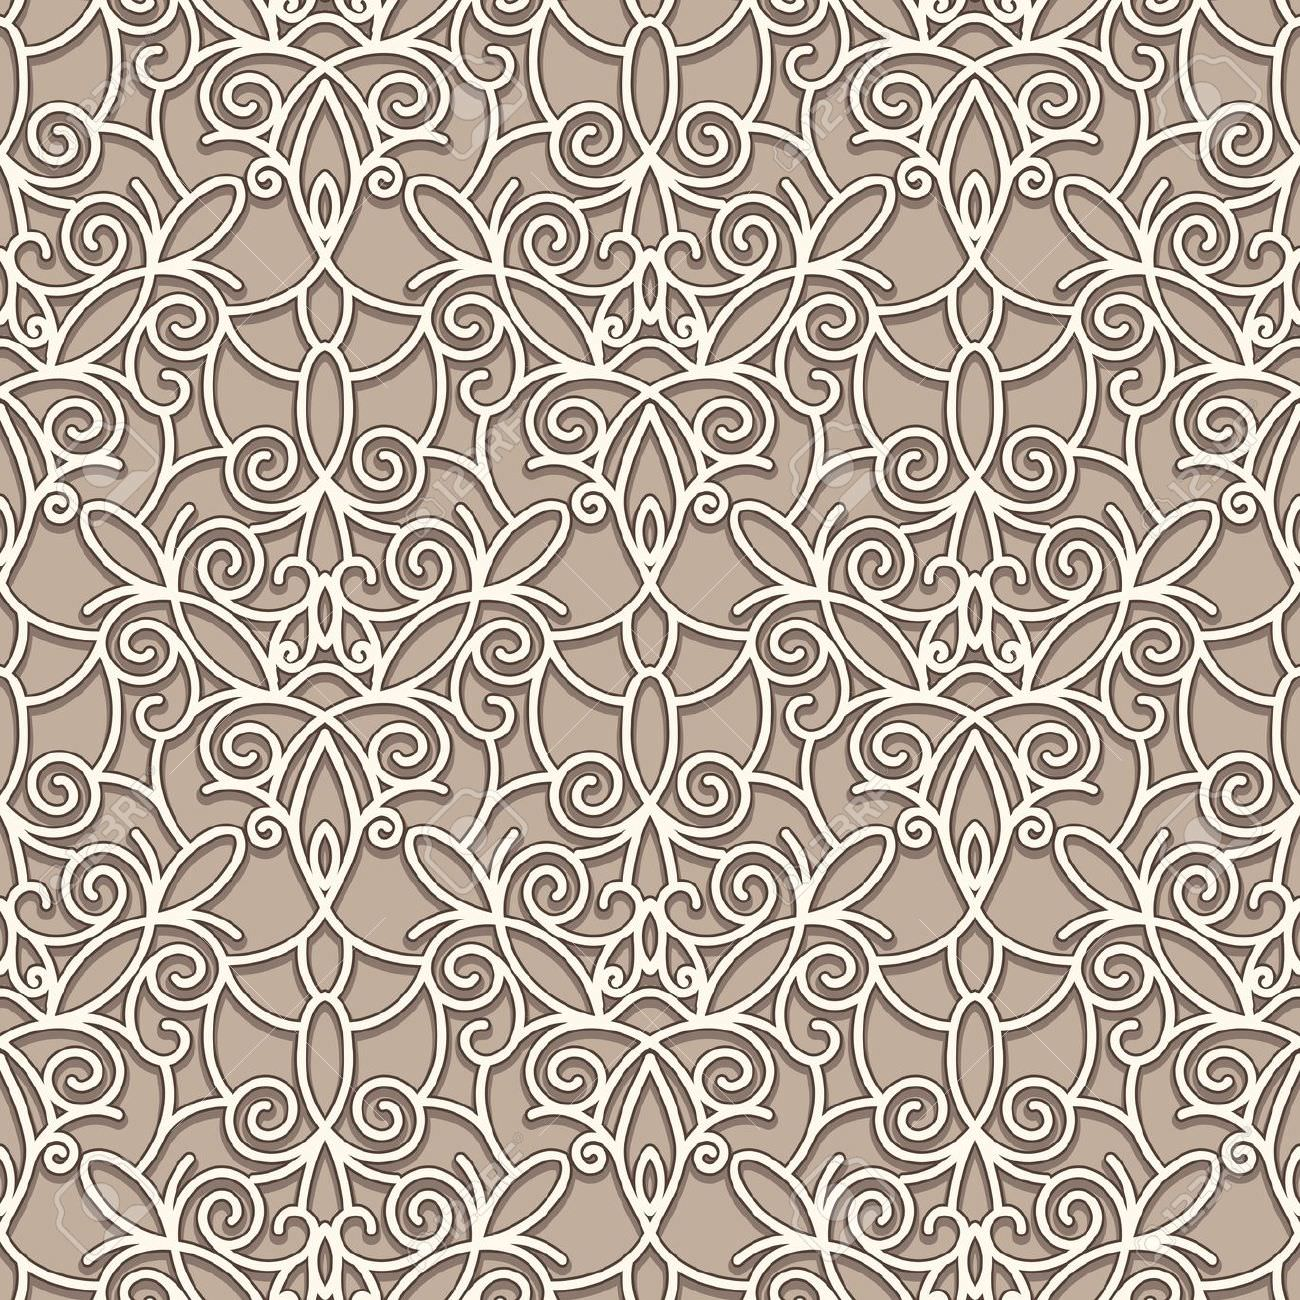 Abstract Seamles Lace Texture Design